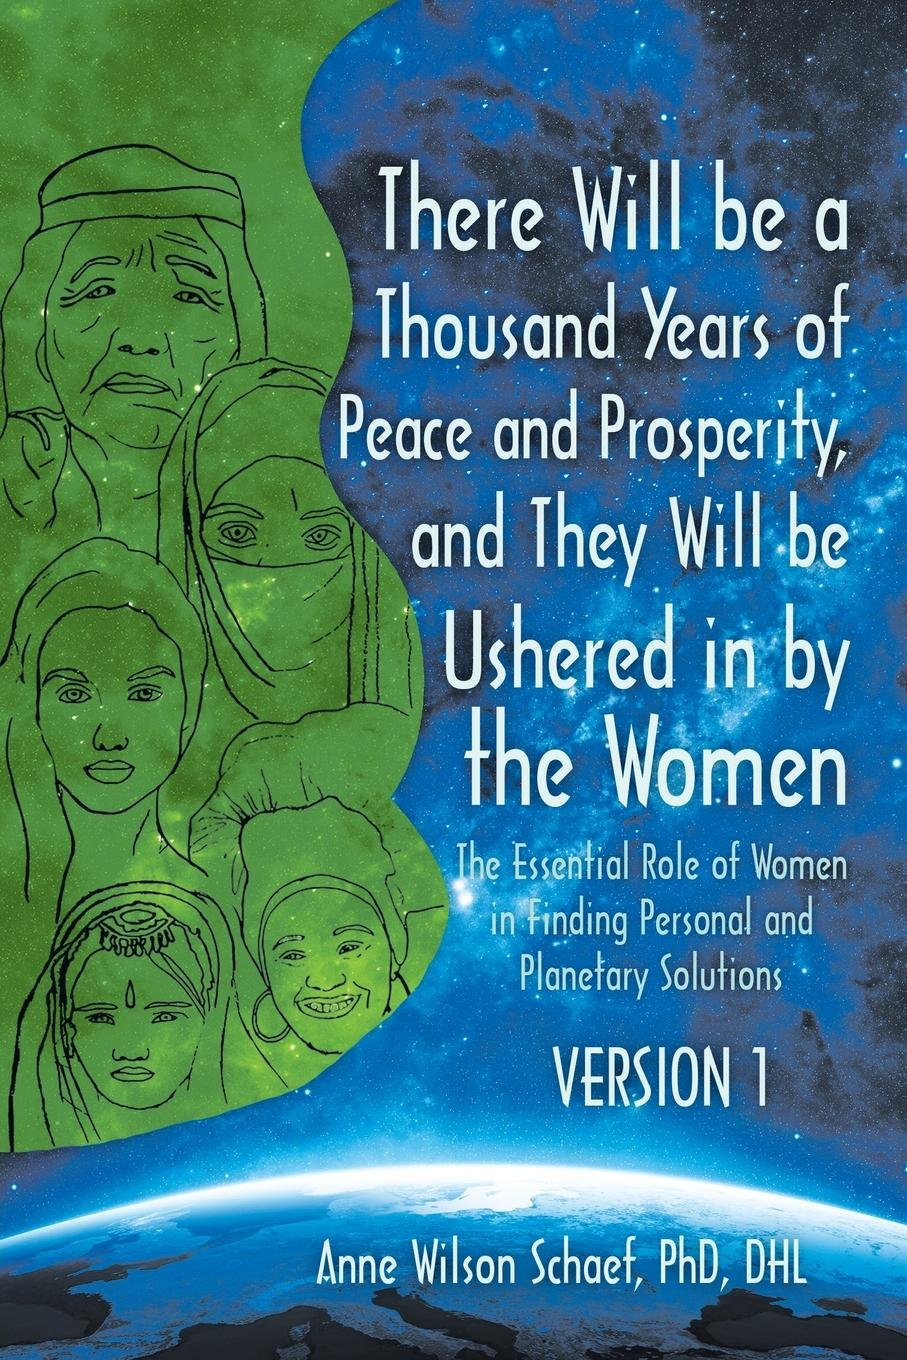 There Will be a Thousand Years of Peace and Prosperity, and They Will be Ushered in by the Women - Version 1 & Version 2: The Essential Role of Women in Finding Personal and Planetary Solutions PDF